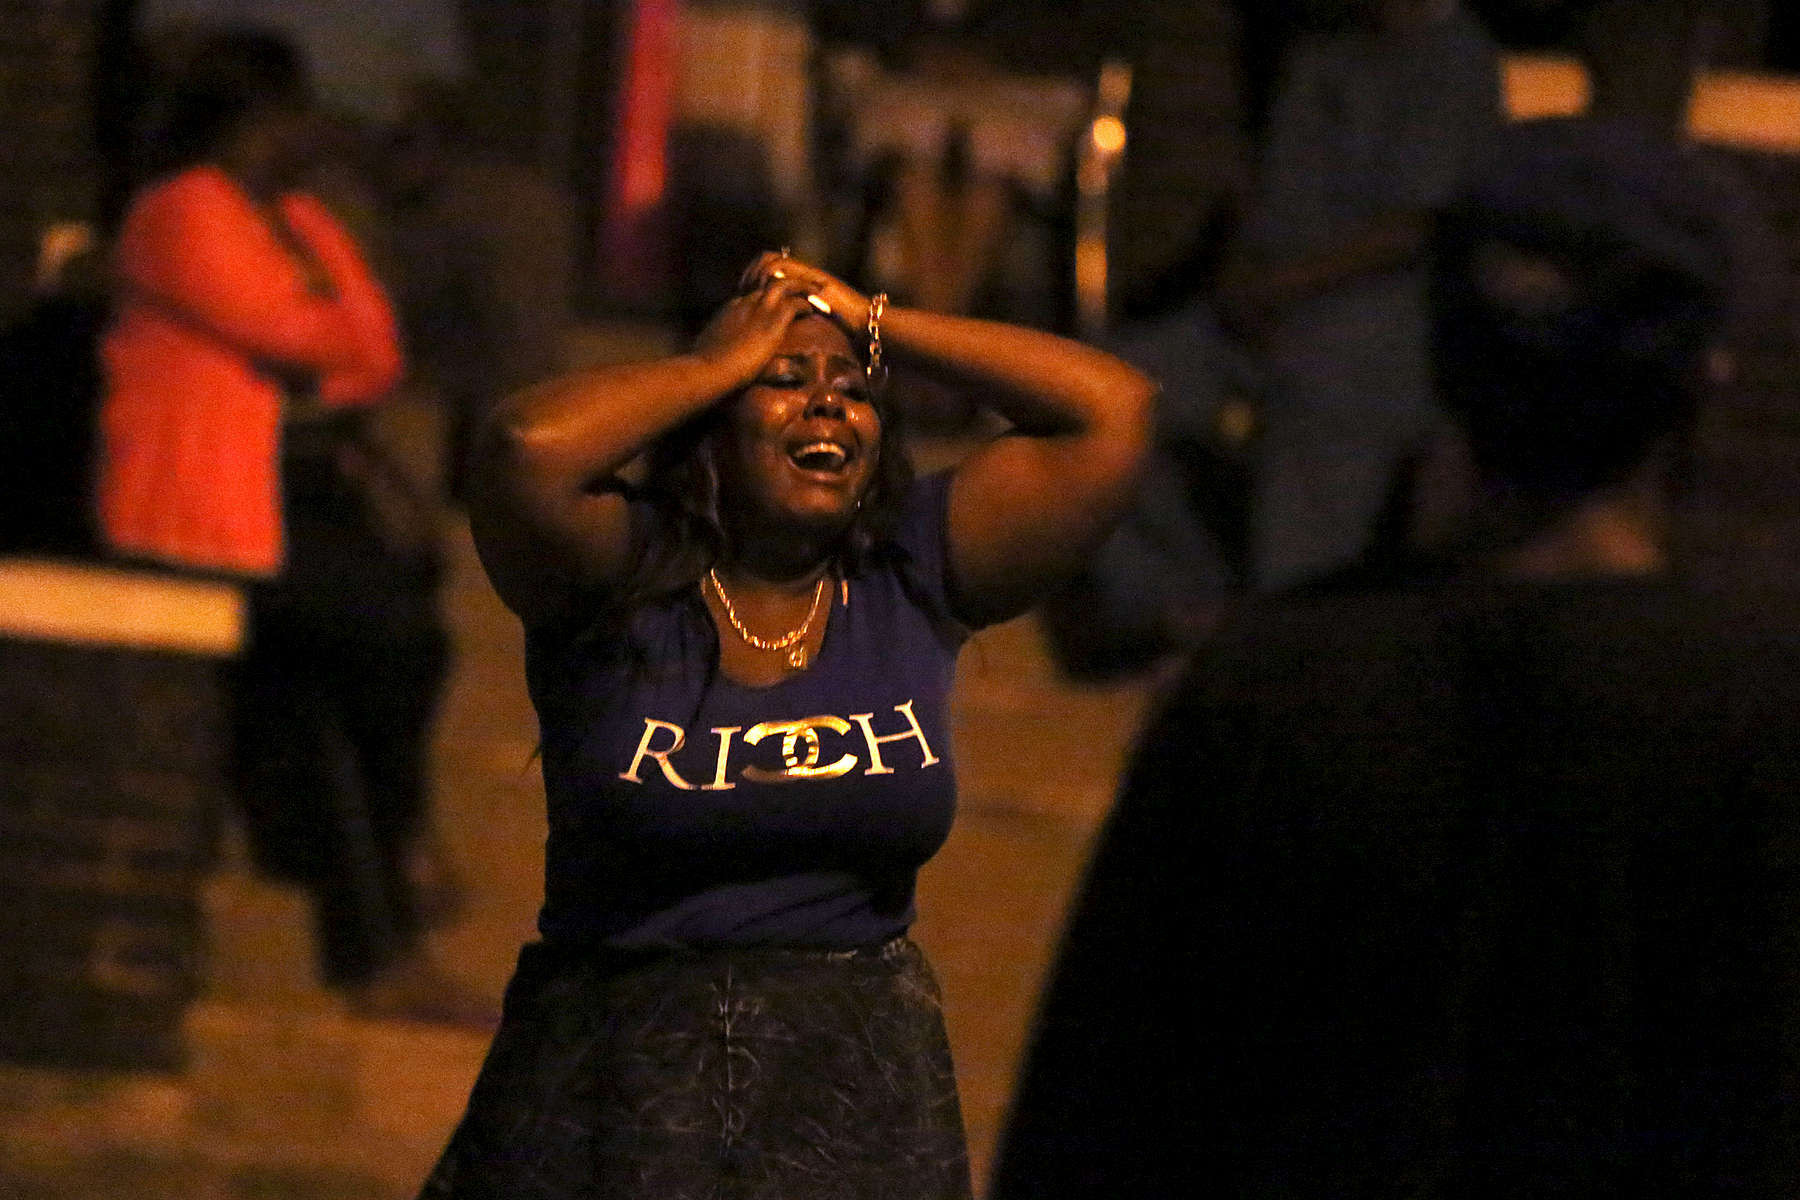 A woman grieves at the scene where three people were shot, including a 33-year-old man who died, in the North Austin neighborhood of Chicago. Witnesses at the scene said the victims were attending a relative's birthday party when the shooting occurred.